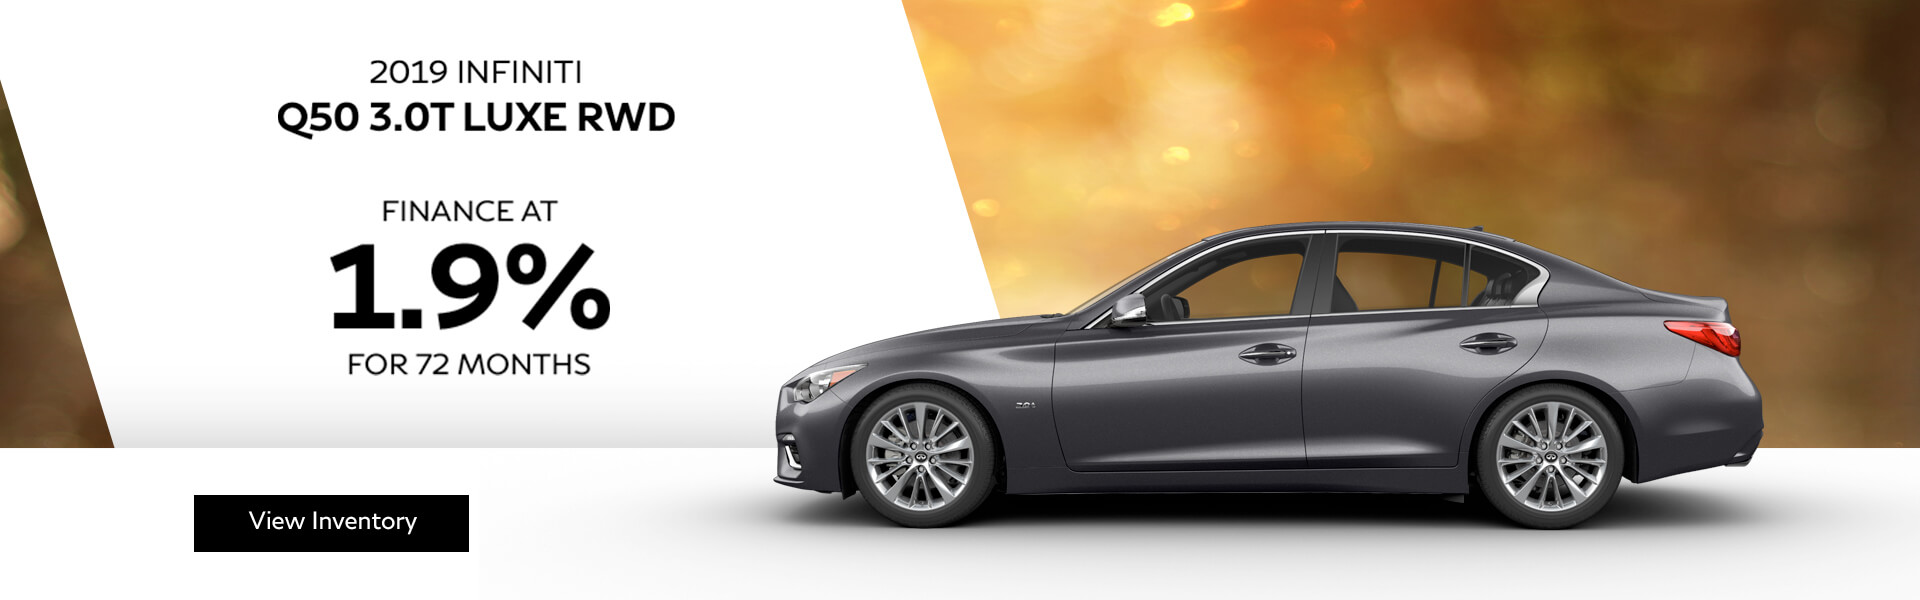 Q50 LUXE - Finance at 1.9%